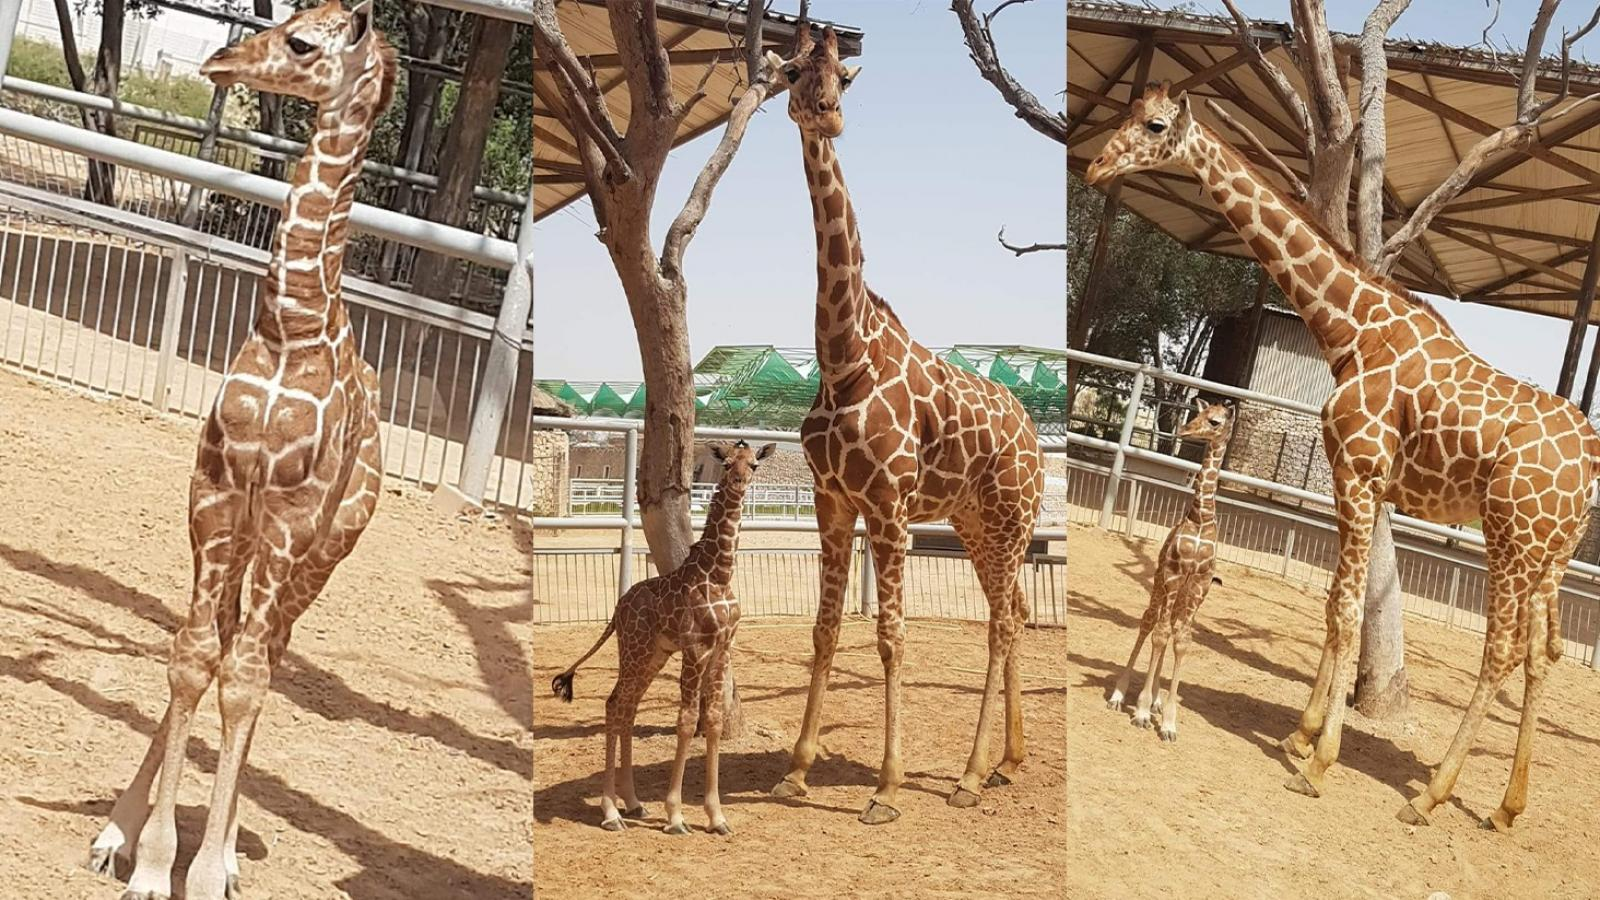 Doha Zoo witnessed the birth of a giraffe on April 8